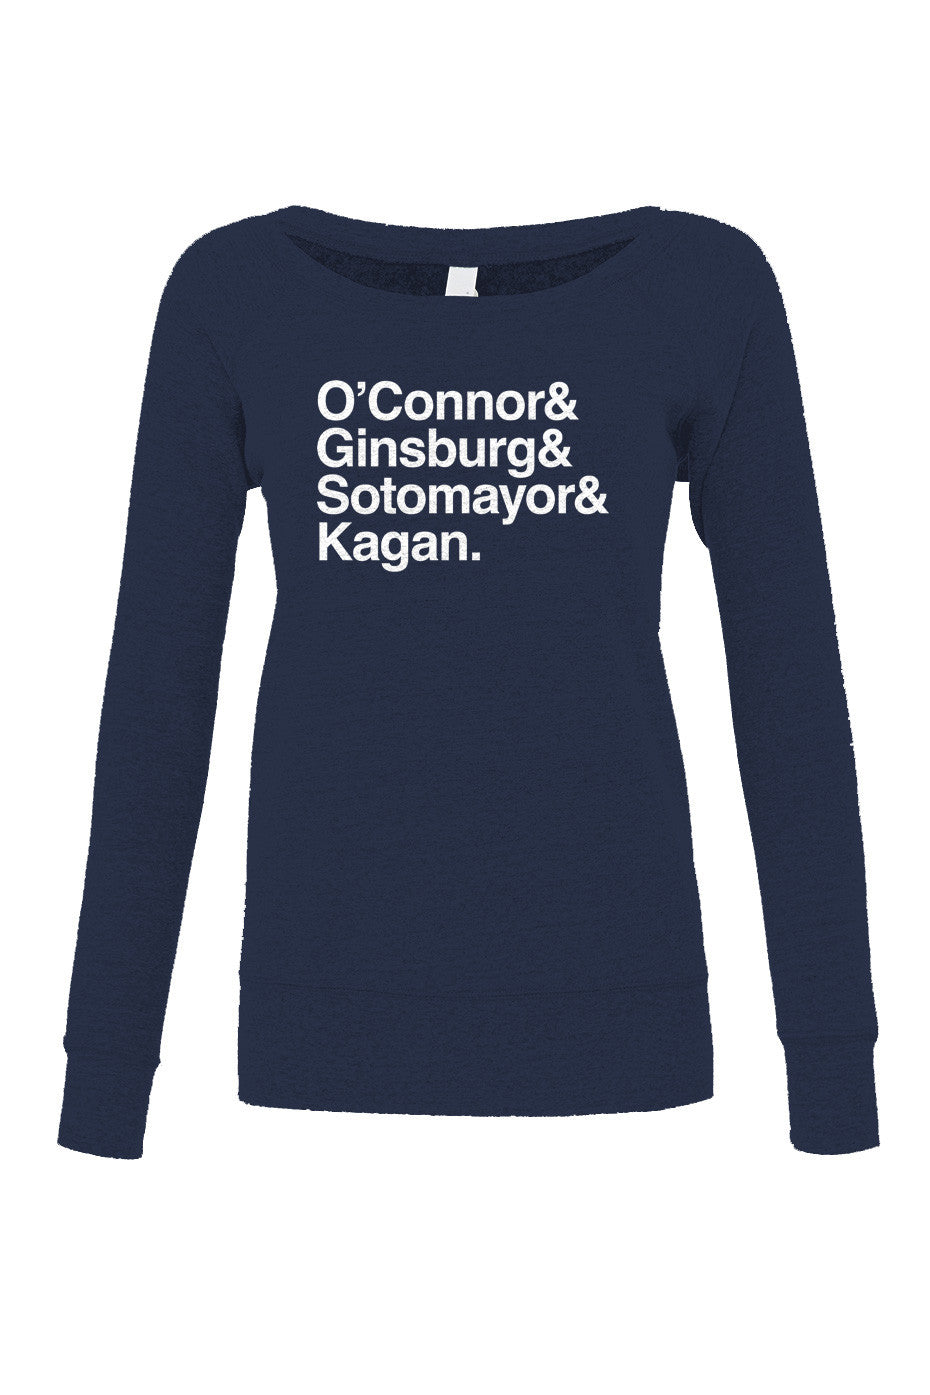 Women's O'Connor Ginsburg Sotomayor Kagan Scoop Neck Fleece